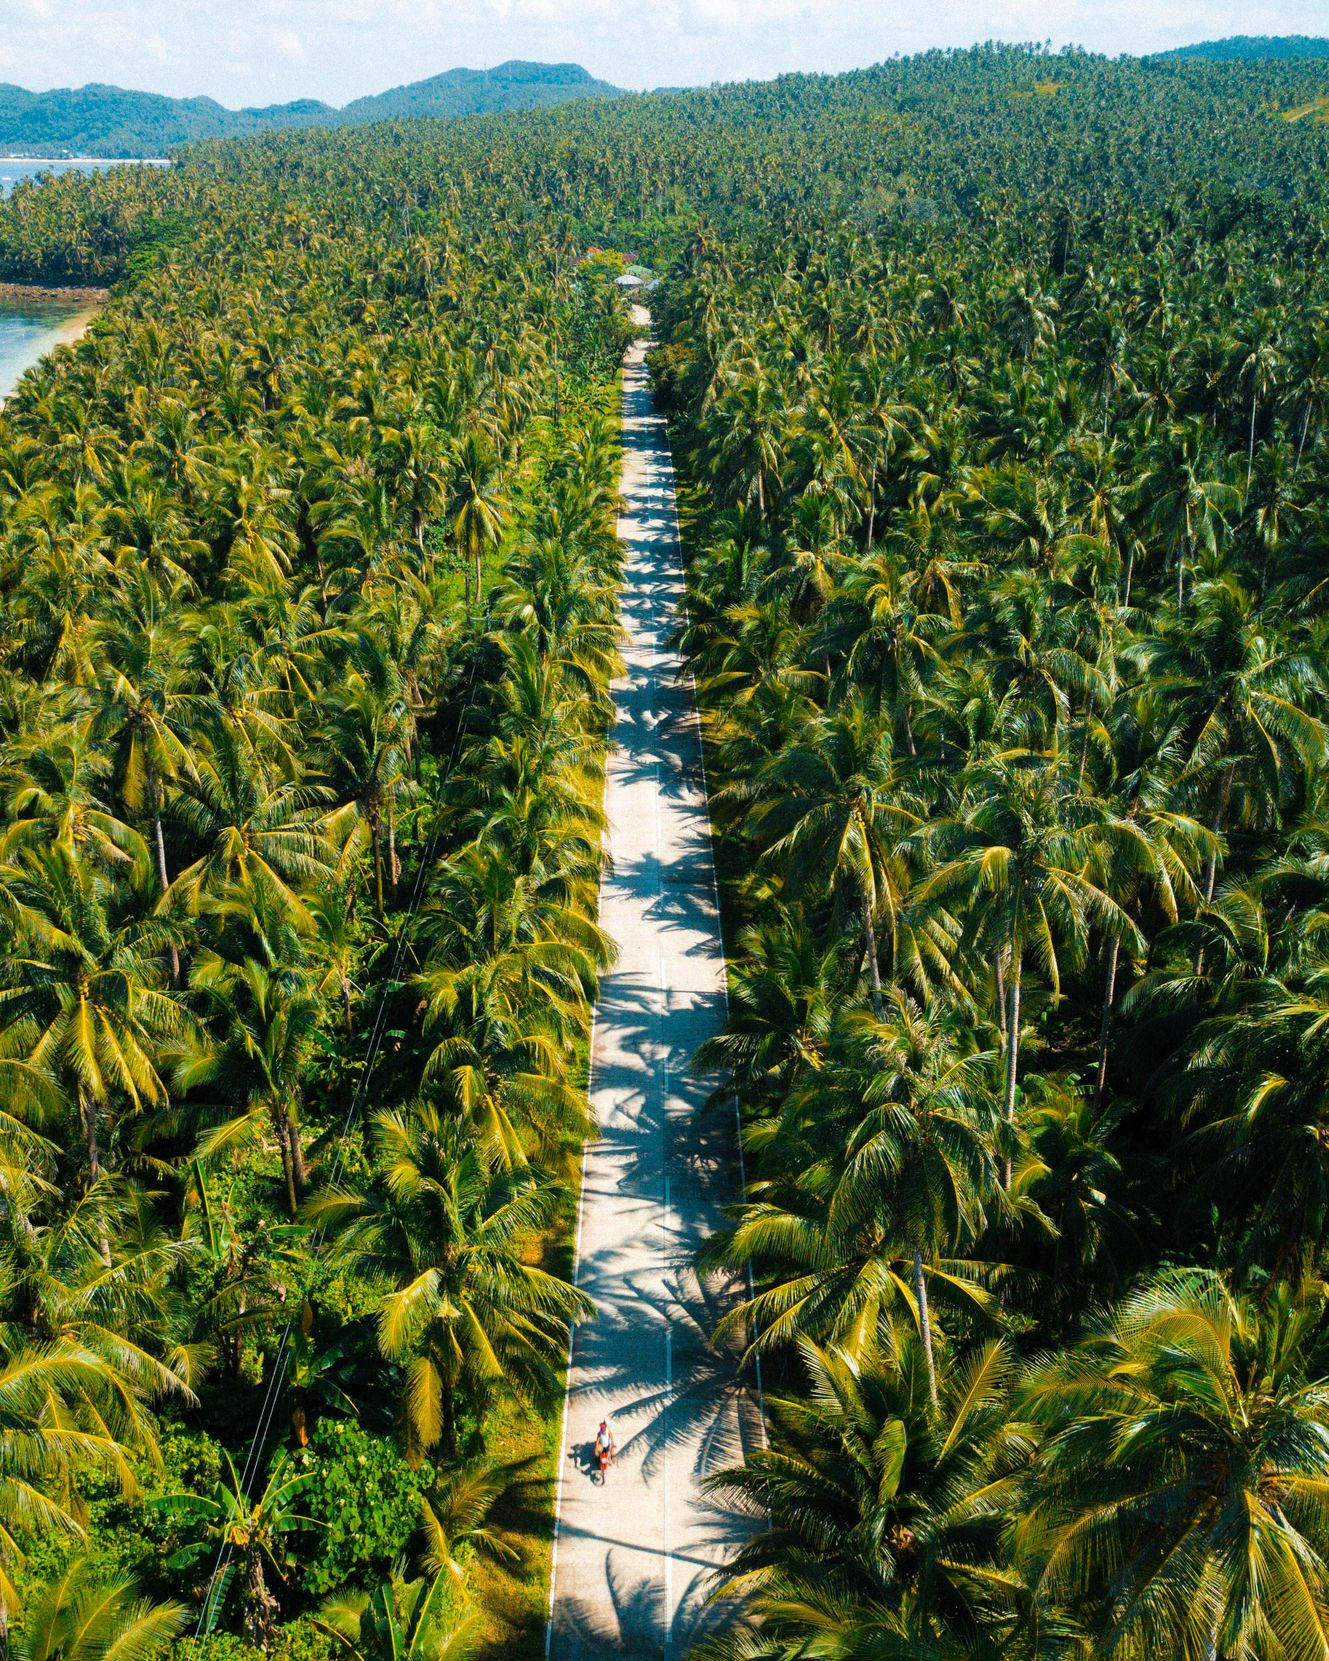 Straight concrete road running through a vast coconut palm forest in Siargao, Philippines